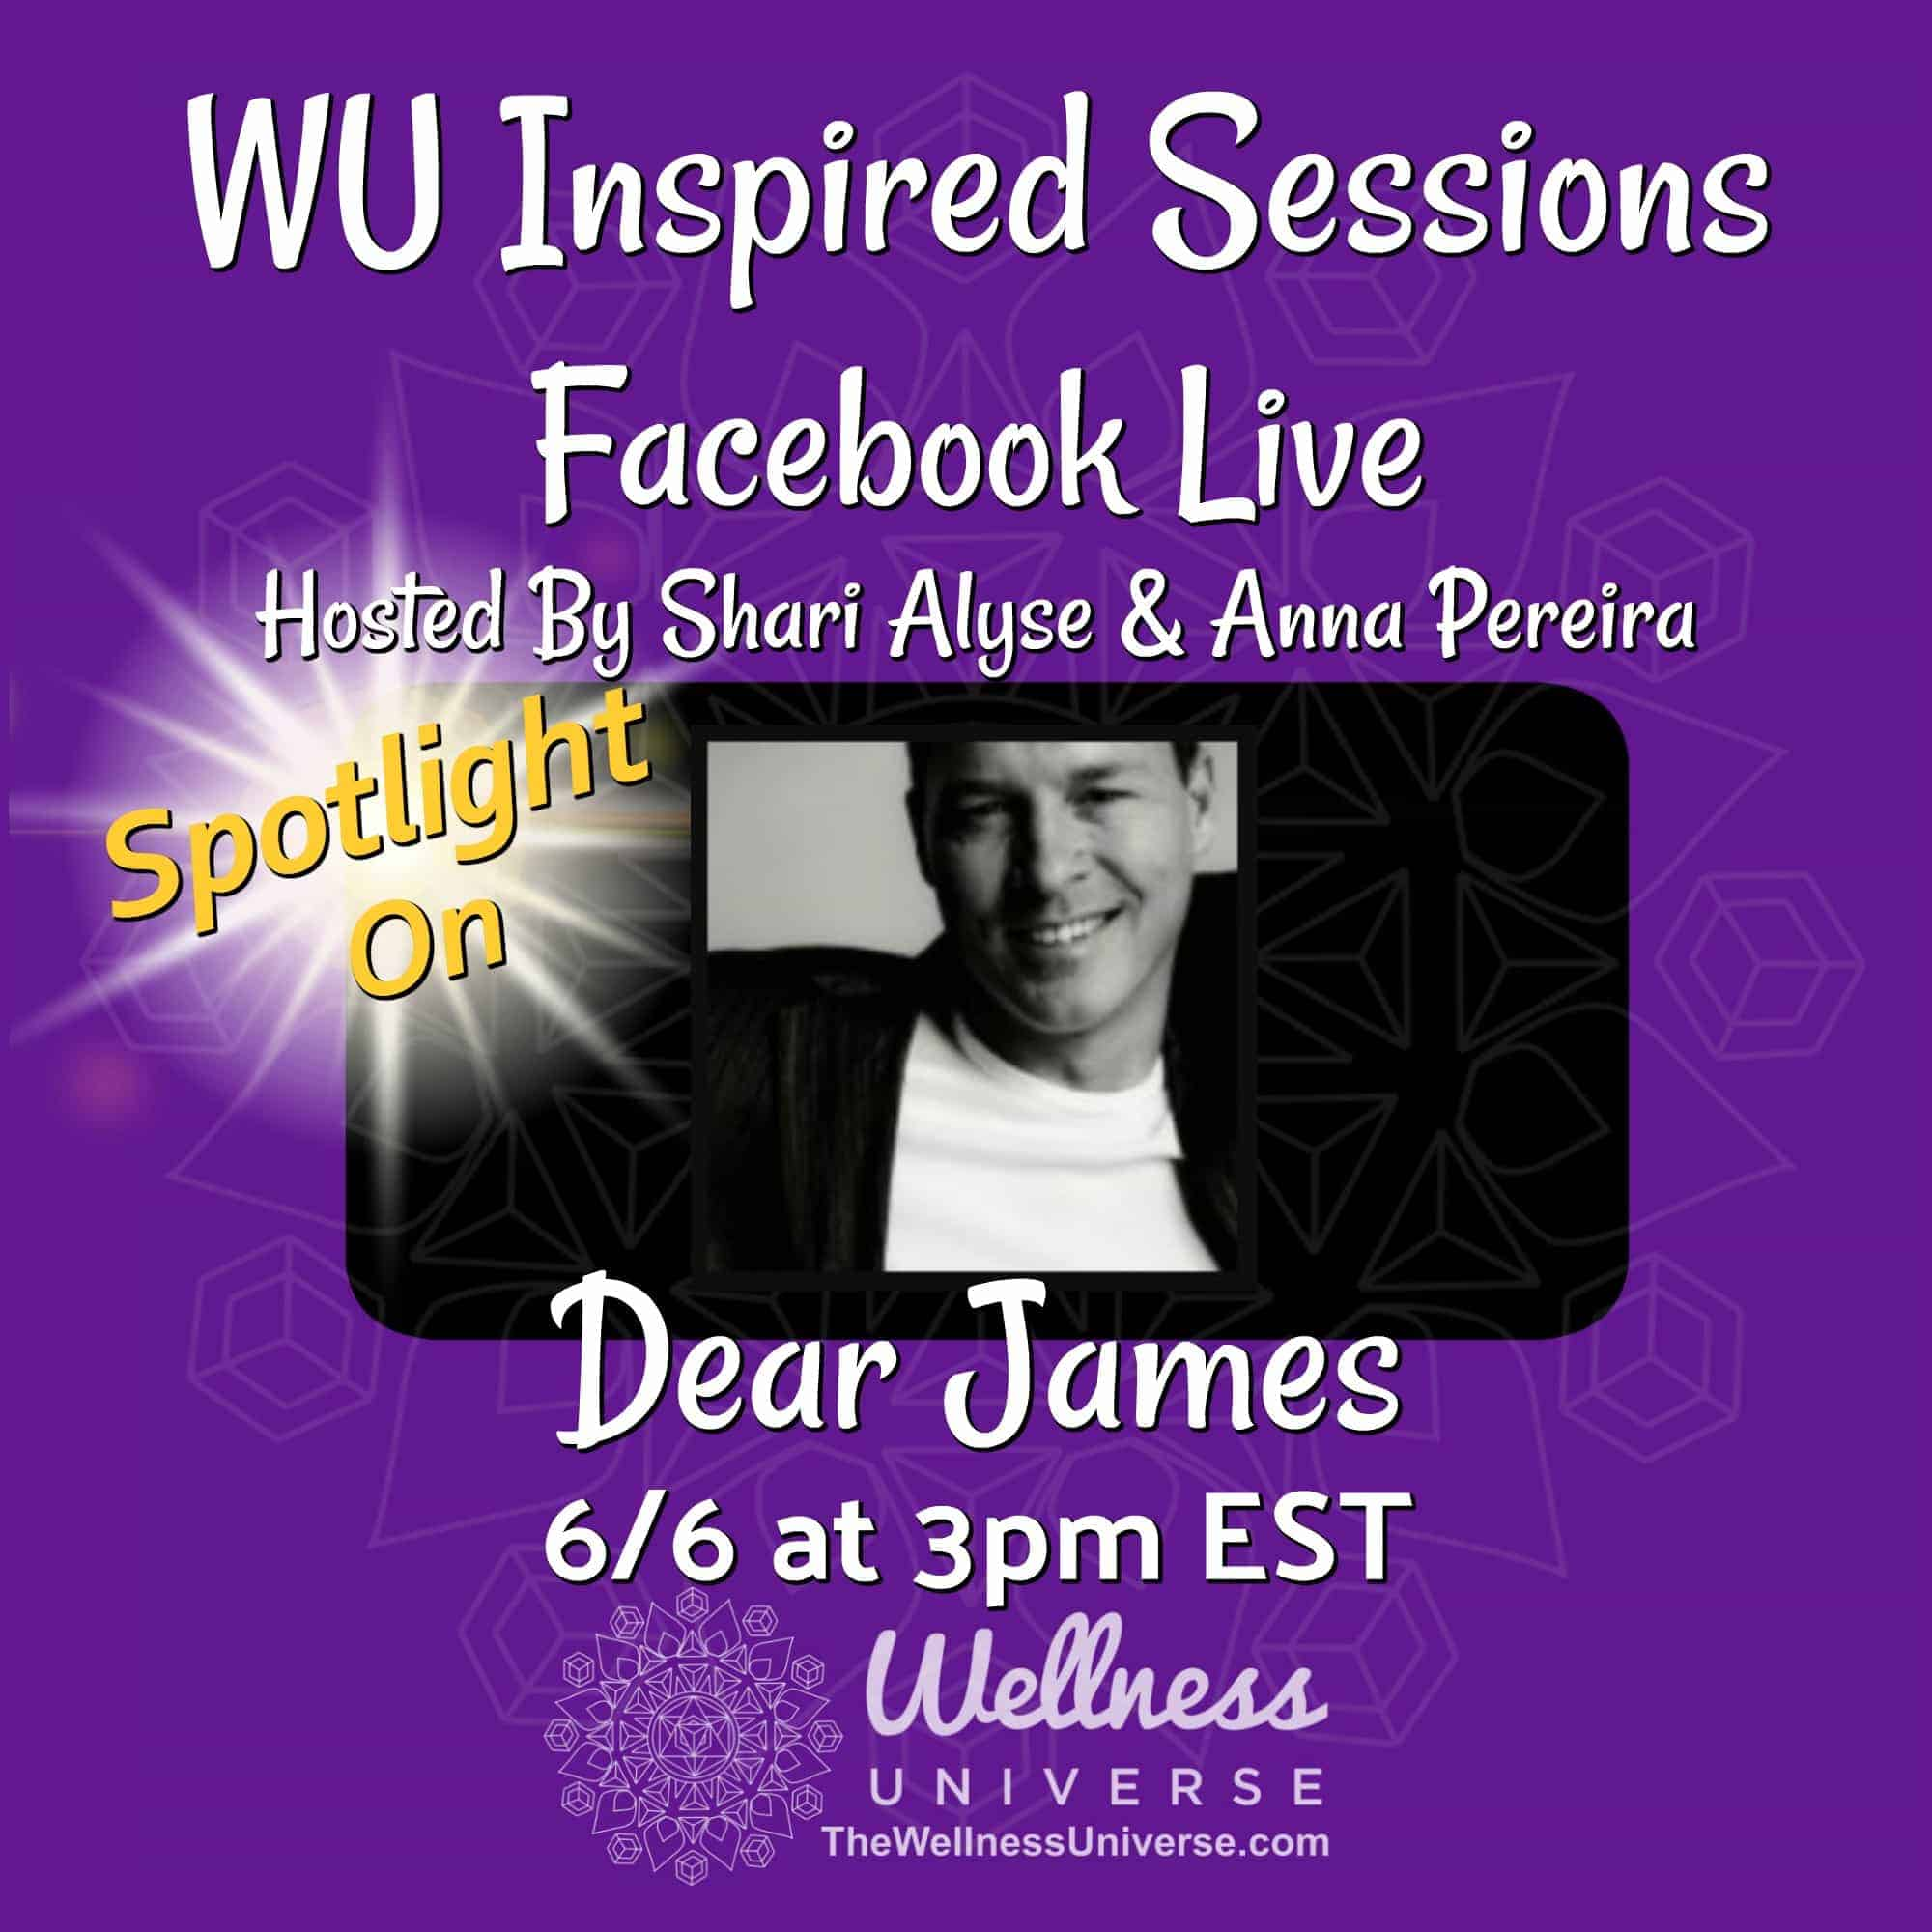 TODAY! Come join us in 30 minutes Facebook LIVE with @dearjames! Excited to premiere The Wellness Un